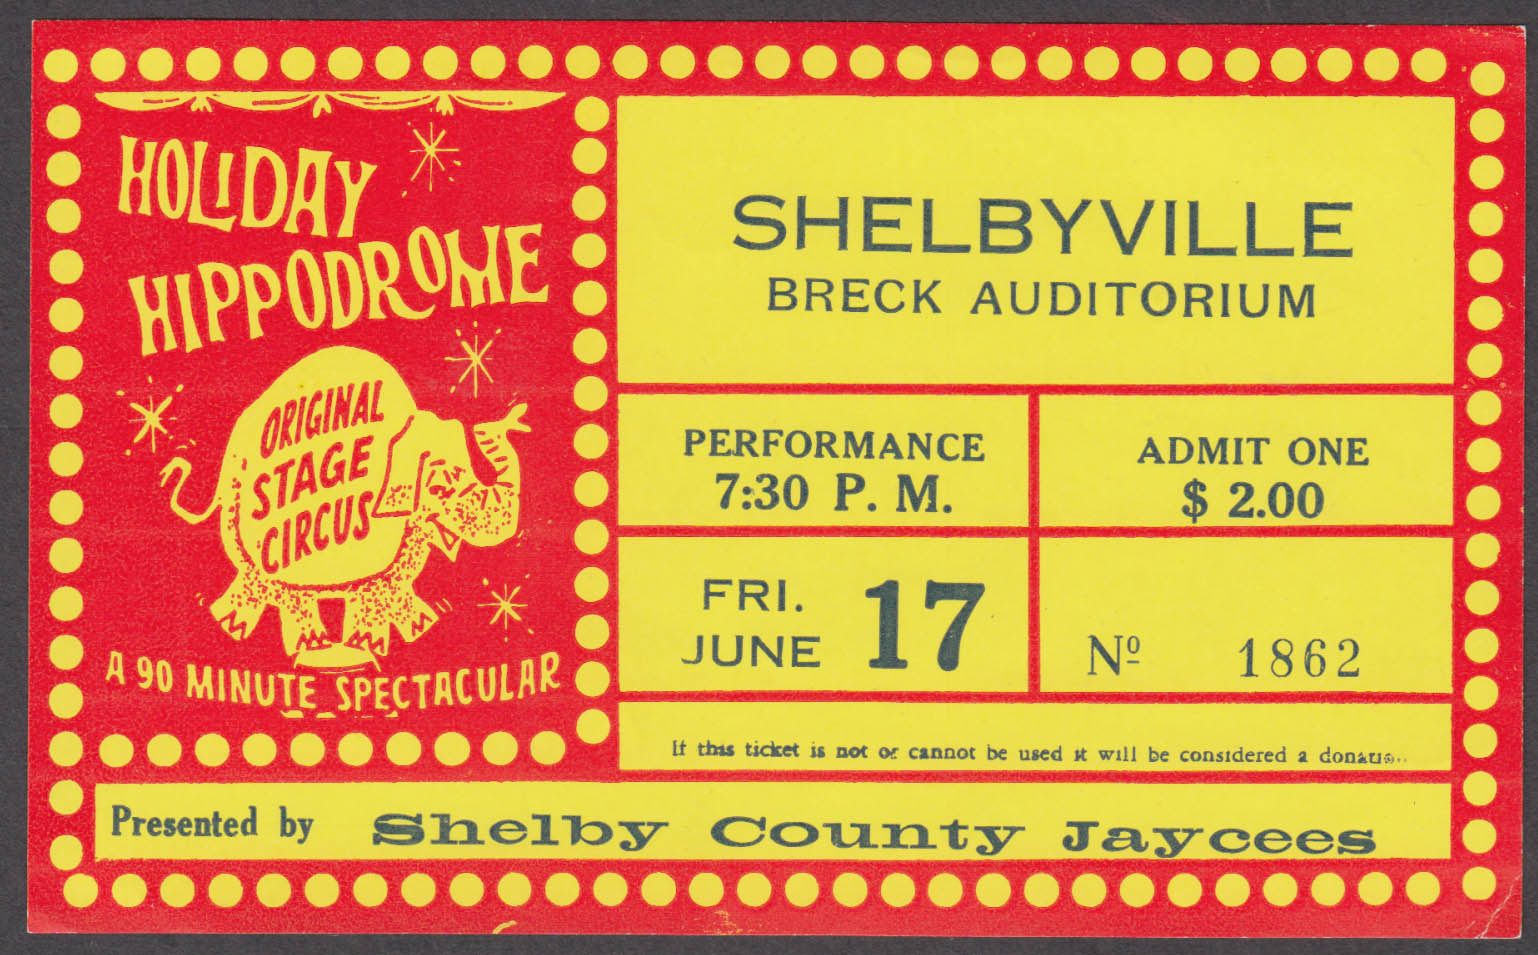 Holiday Hippodrome Stage circus ticket $2.00 Shelbyville Breck Auditorium